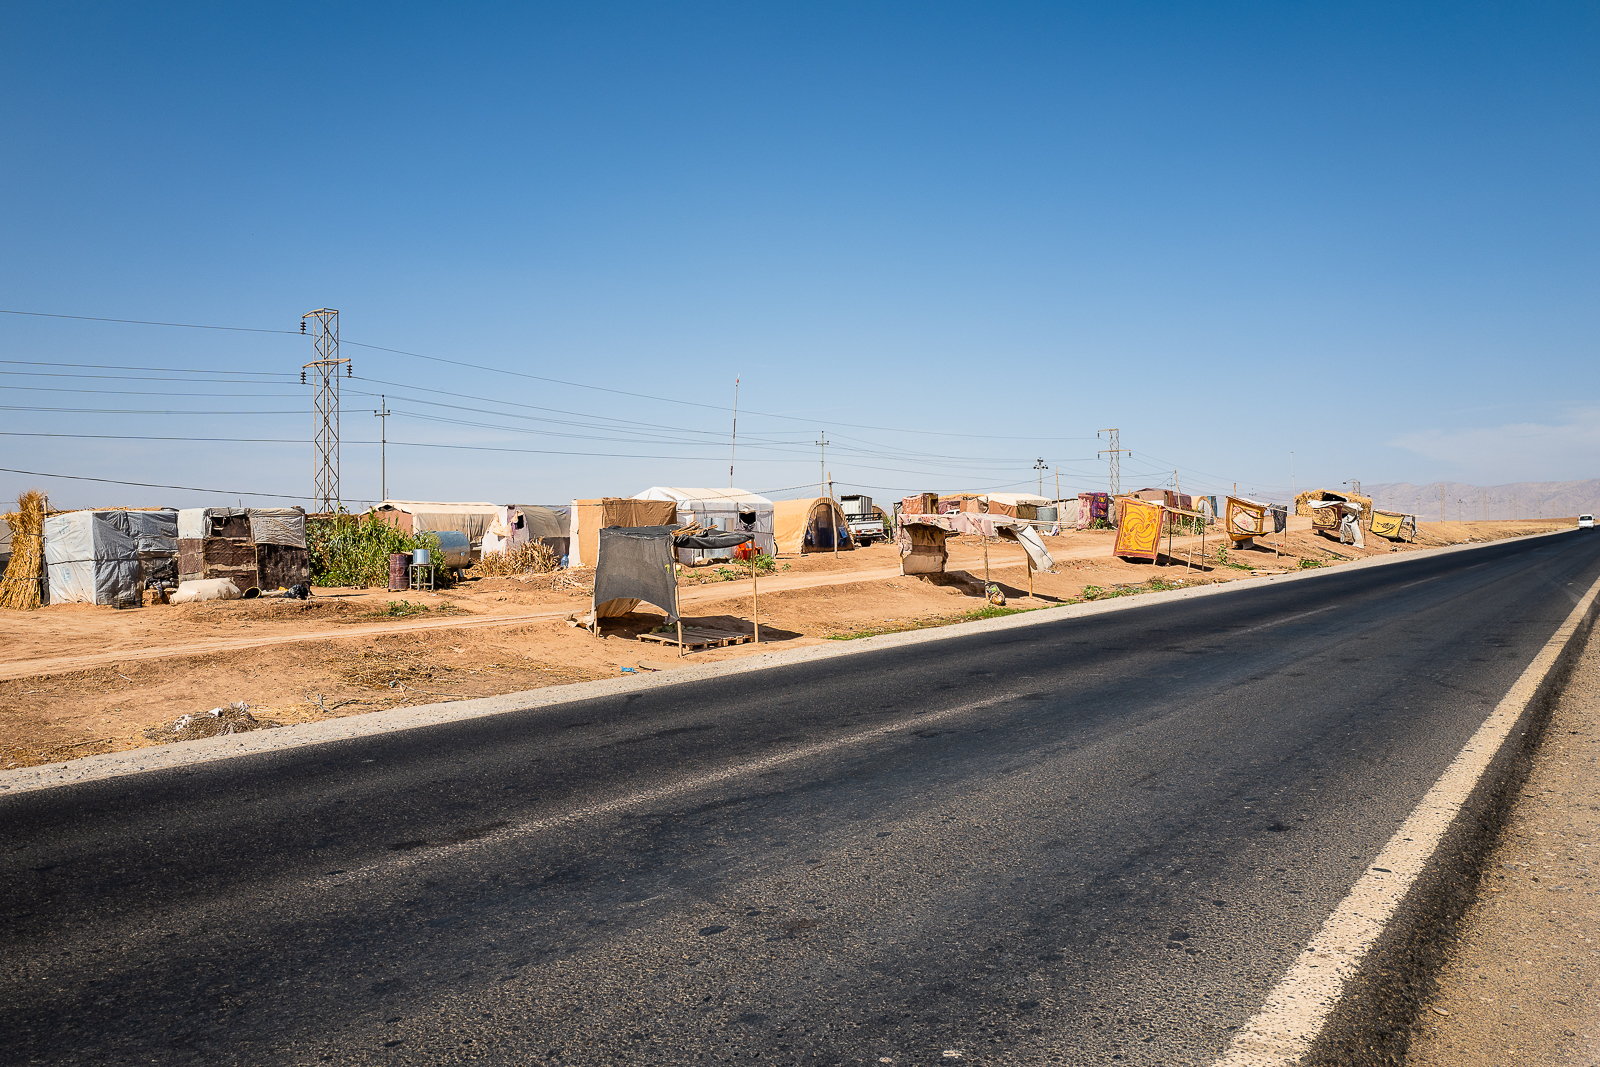 Unofficial refugees camp on the border of the street near Douhk. The yazidi refugees inside this camp are making some money ny selling seeds and vegetables in the tents you can see on the border of the streets